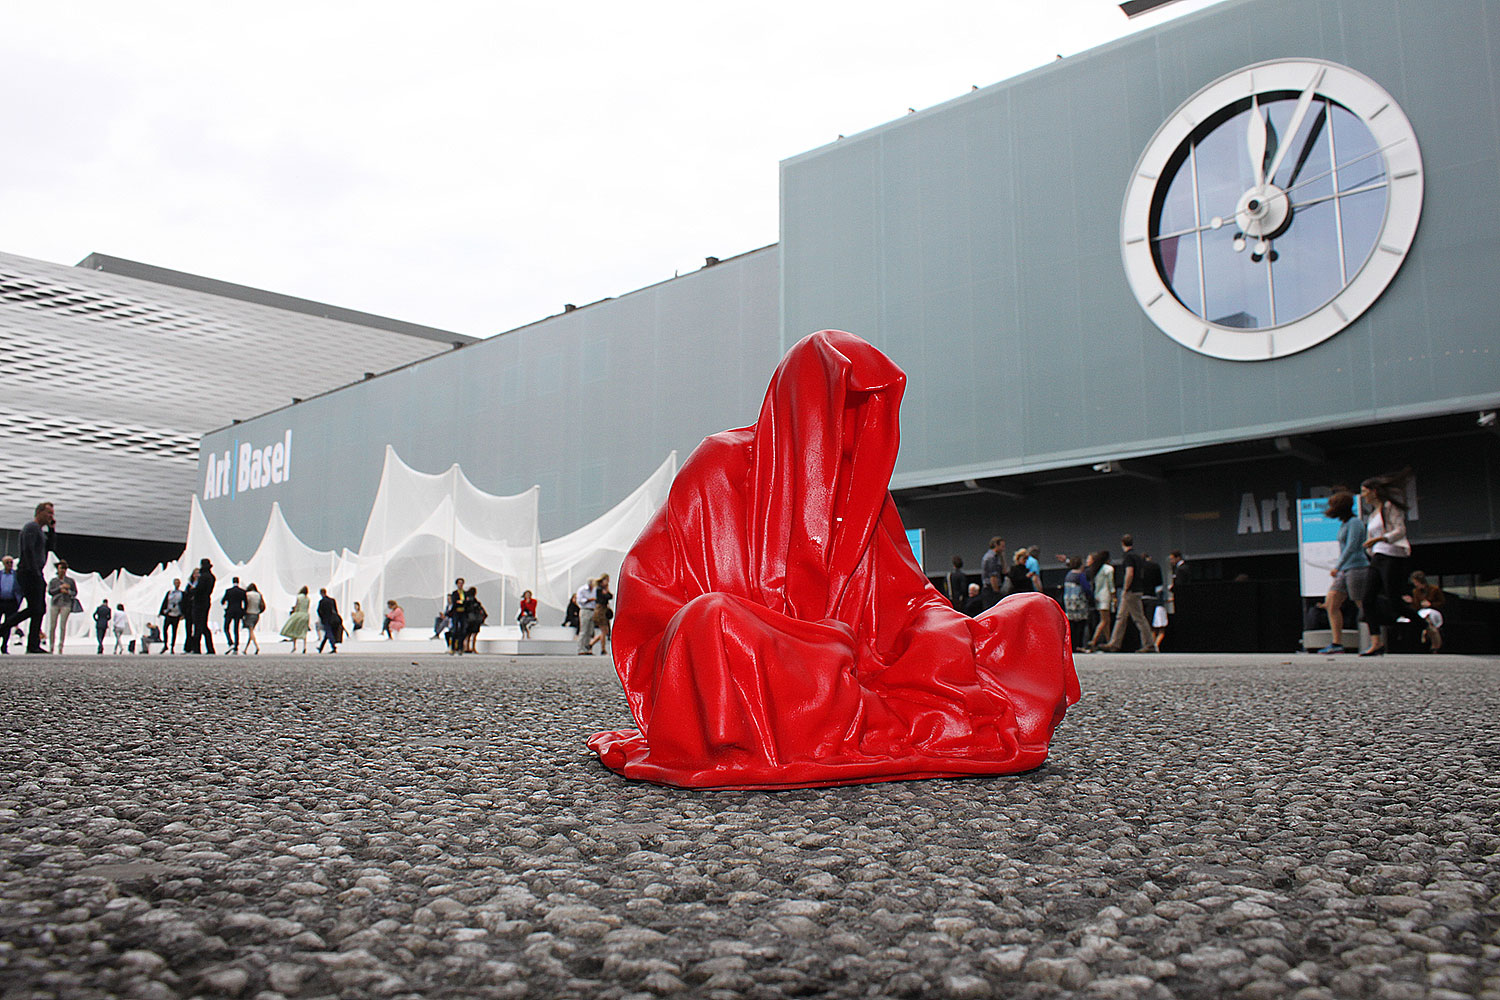 highlights-public-artbasel-scope-art-show-guardians-of-time-manfred-kielnhofer-steinreich-contemporary-art-sculpture-tour-1245